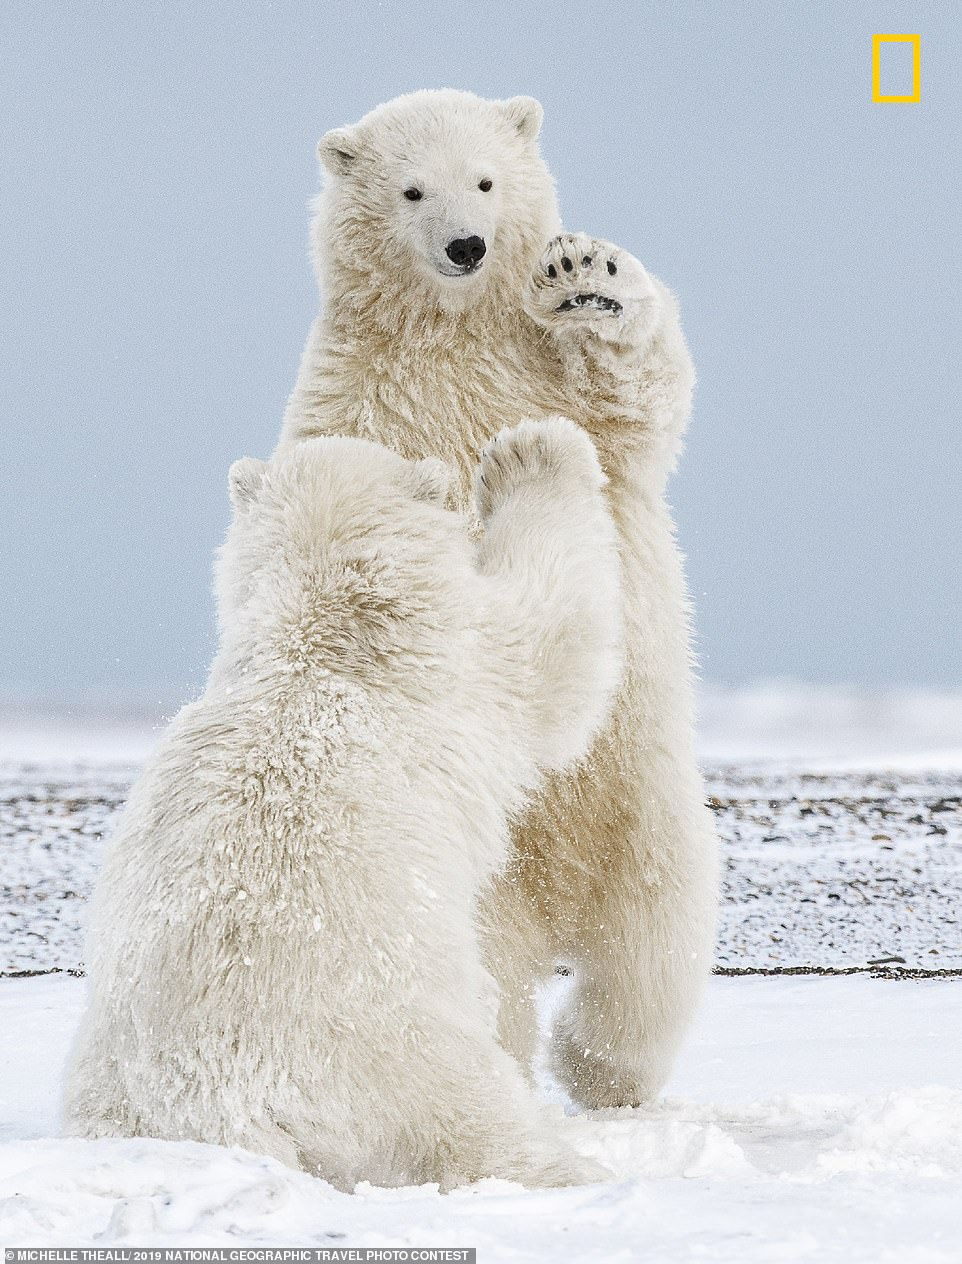 Michelle Theall said she rode an icebreaker along the Beaufort Sea in Kaktovik, Alaska, to capture these two polar bear cubs playing in the snow. She said: 'I was fortunate to grab this high-five moment, among so many other favorites. It's difficult to photograph the bears in snow at eye level on the ice and this close, because once the water freezes, the season is over for small skiffs. If you go too early, you only capture polar bears on dirt'